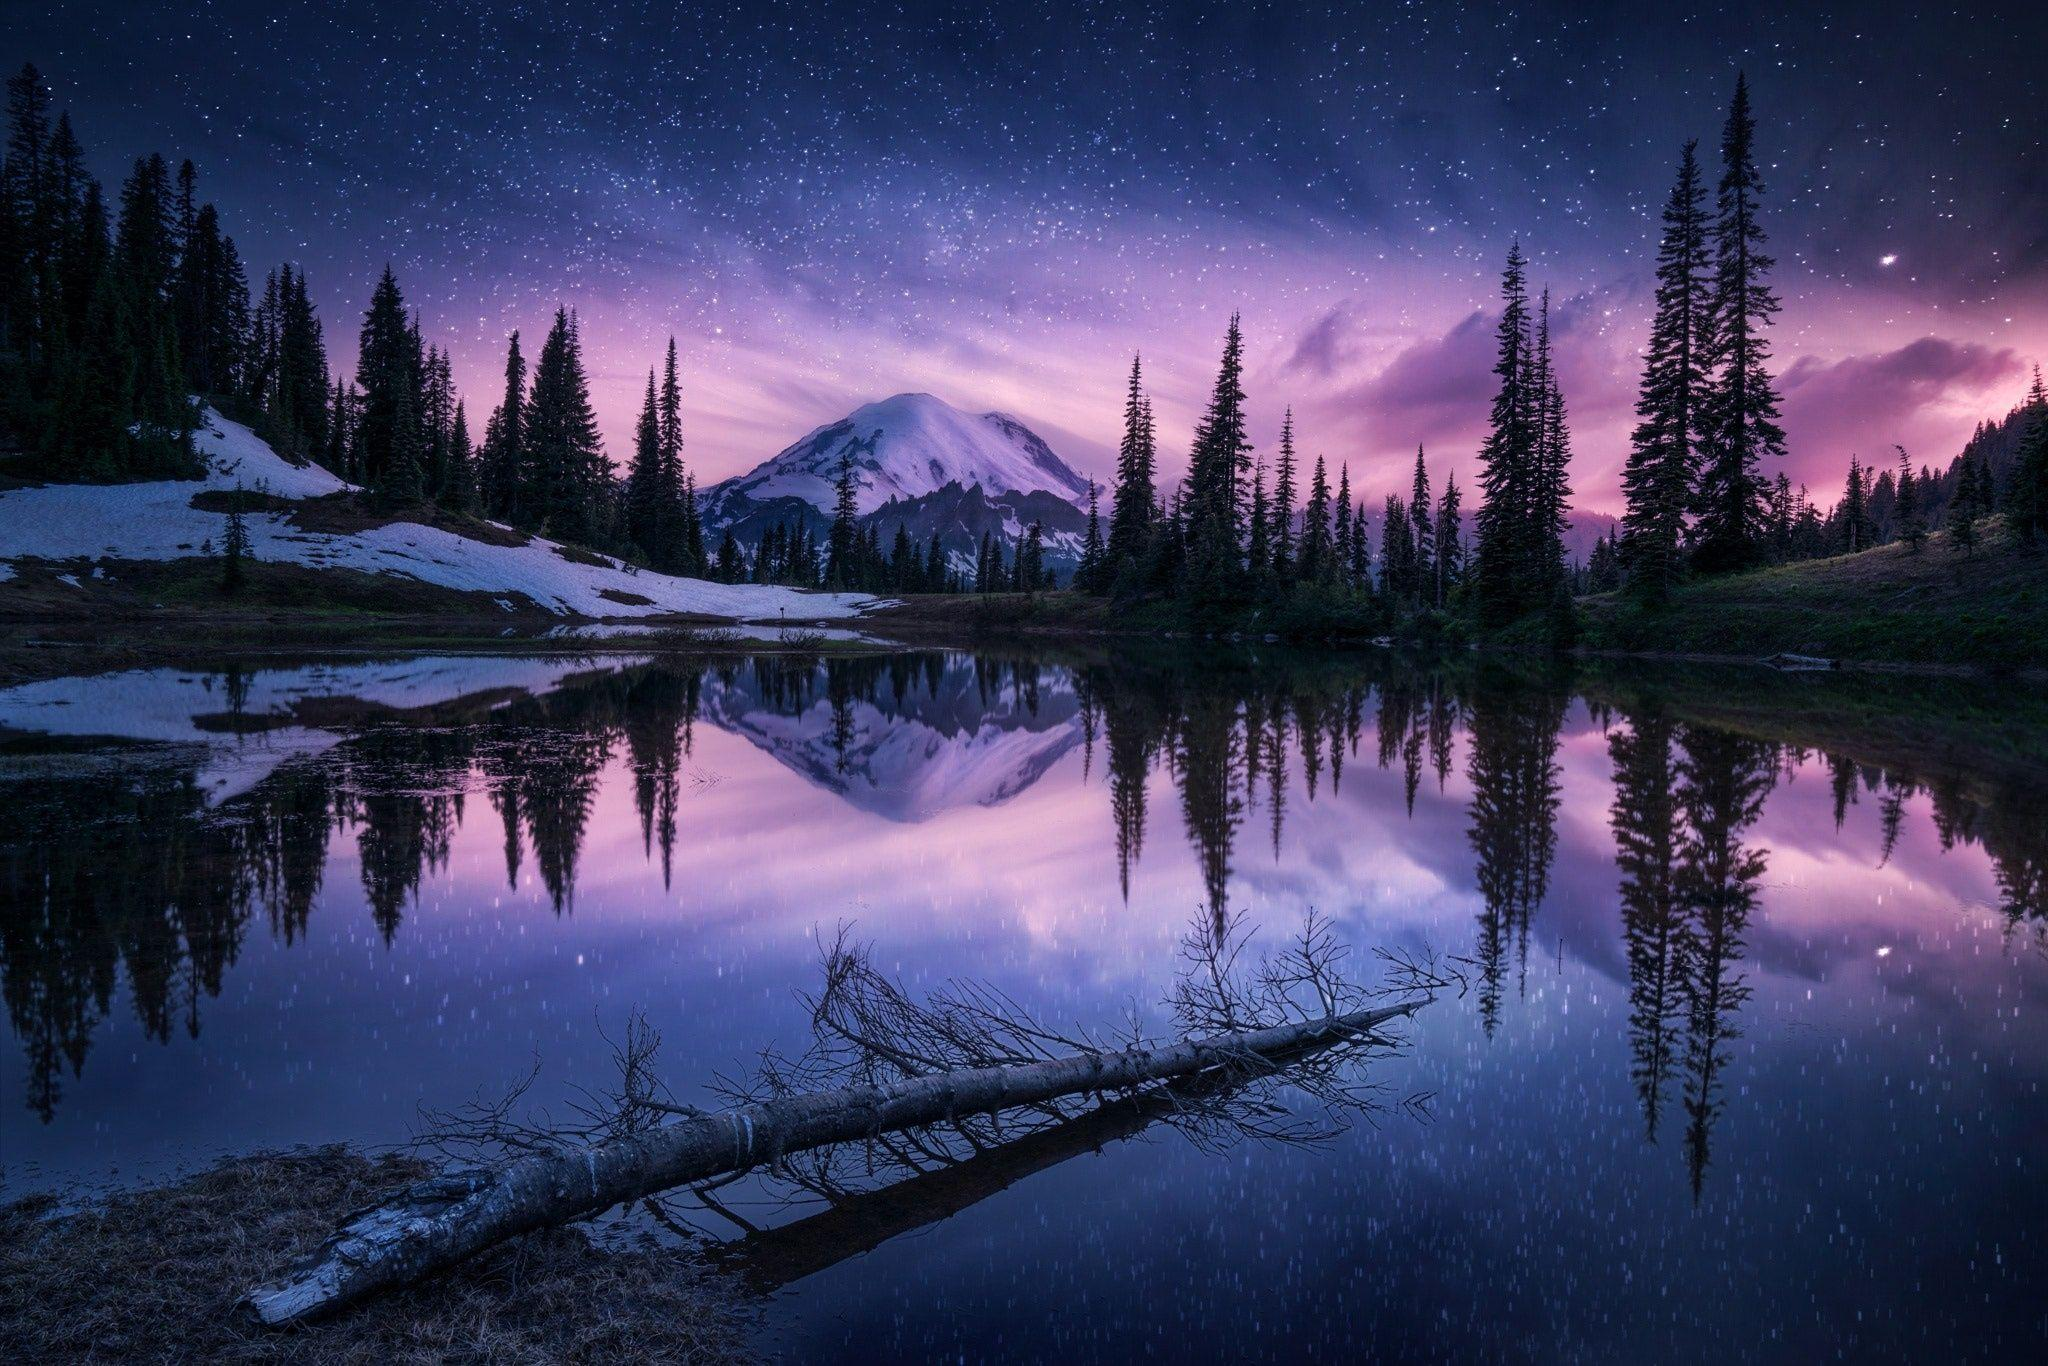 Wallpapers Nature Night - Wallpaper Cave